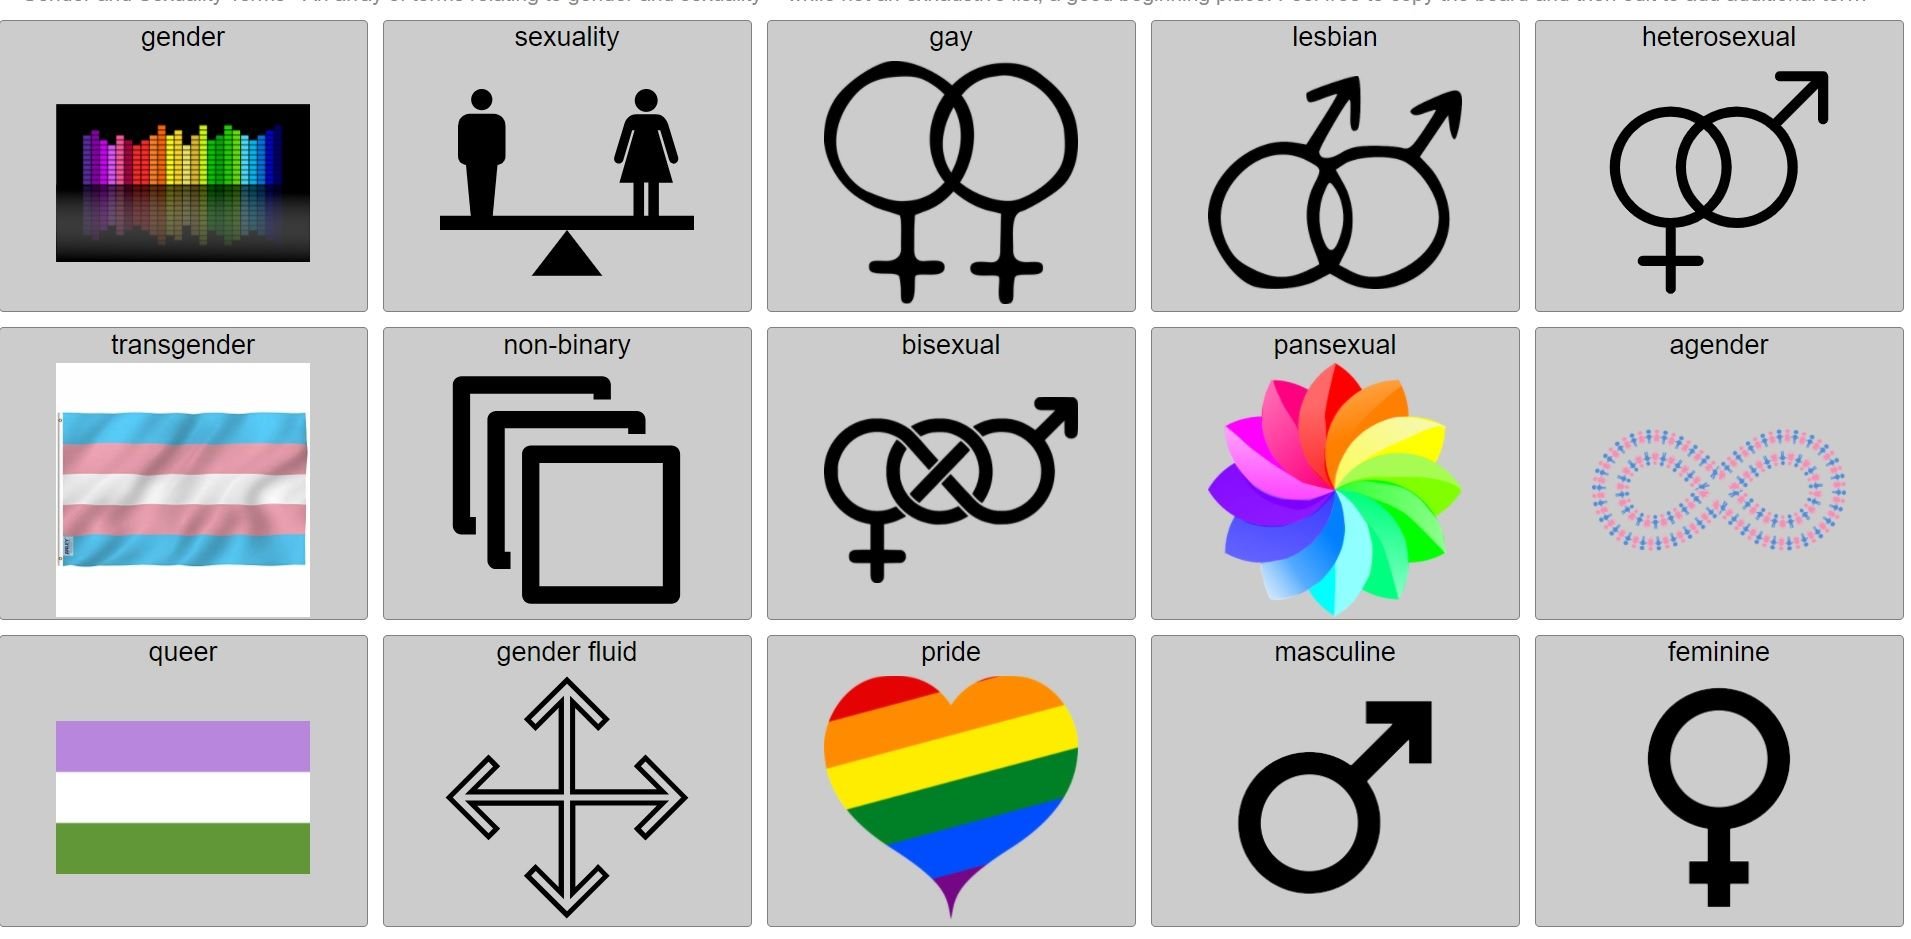 """An AAC speech boards with 15 buttons that read """"gender,"""" """"sexuality,"""" """"gay,"""" """"lesbian,"""" """"heterosexual,"""" """"transgender,"""" """"non-binary,"""" """"bisexual,"""" """"pansexual,"""" """"agender,"""" """"queer,"""" """"gender fluid,"""" """"pride,"""" """"masculine,"""" and """"feminine"""""""